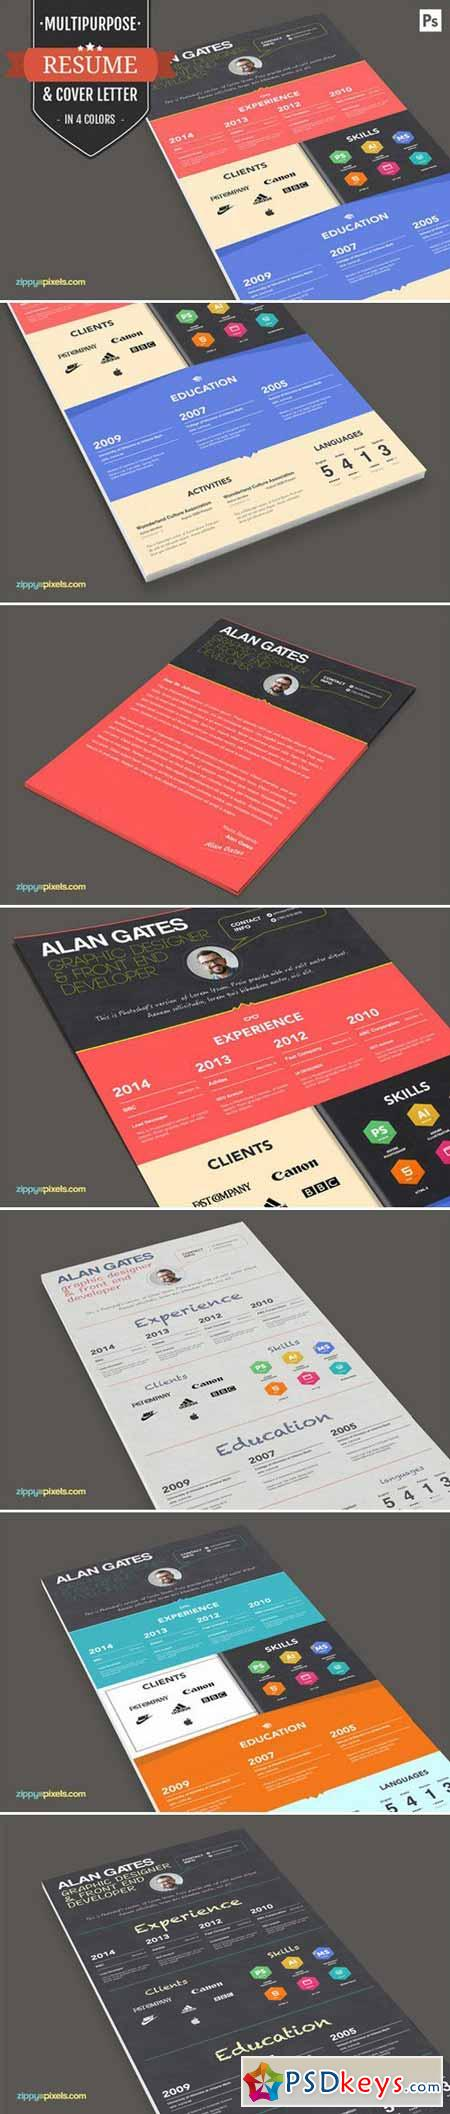 Print Ready Resume CV Template Set 394588